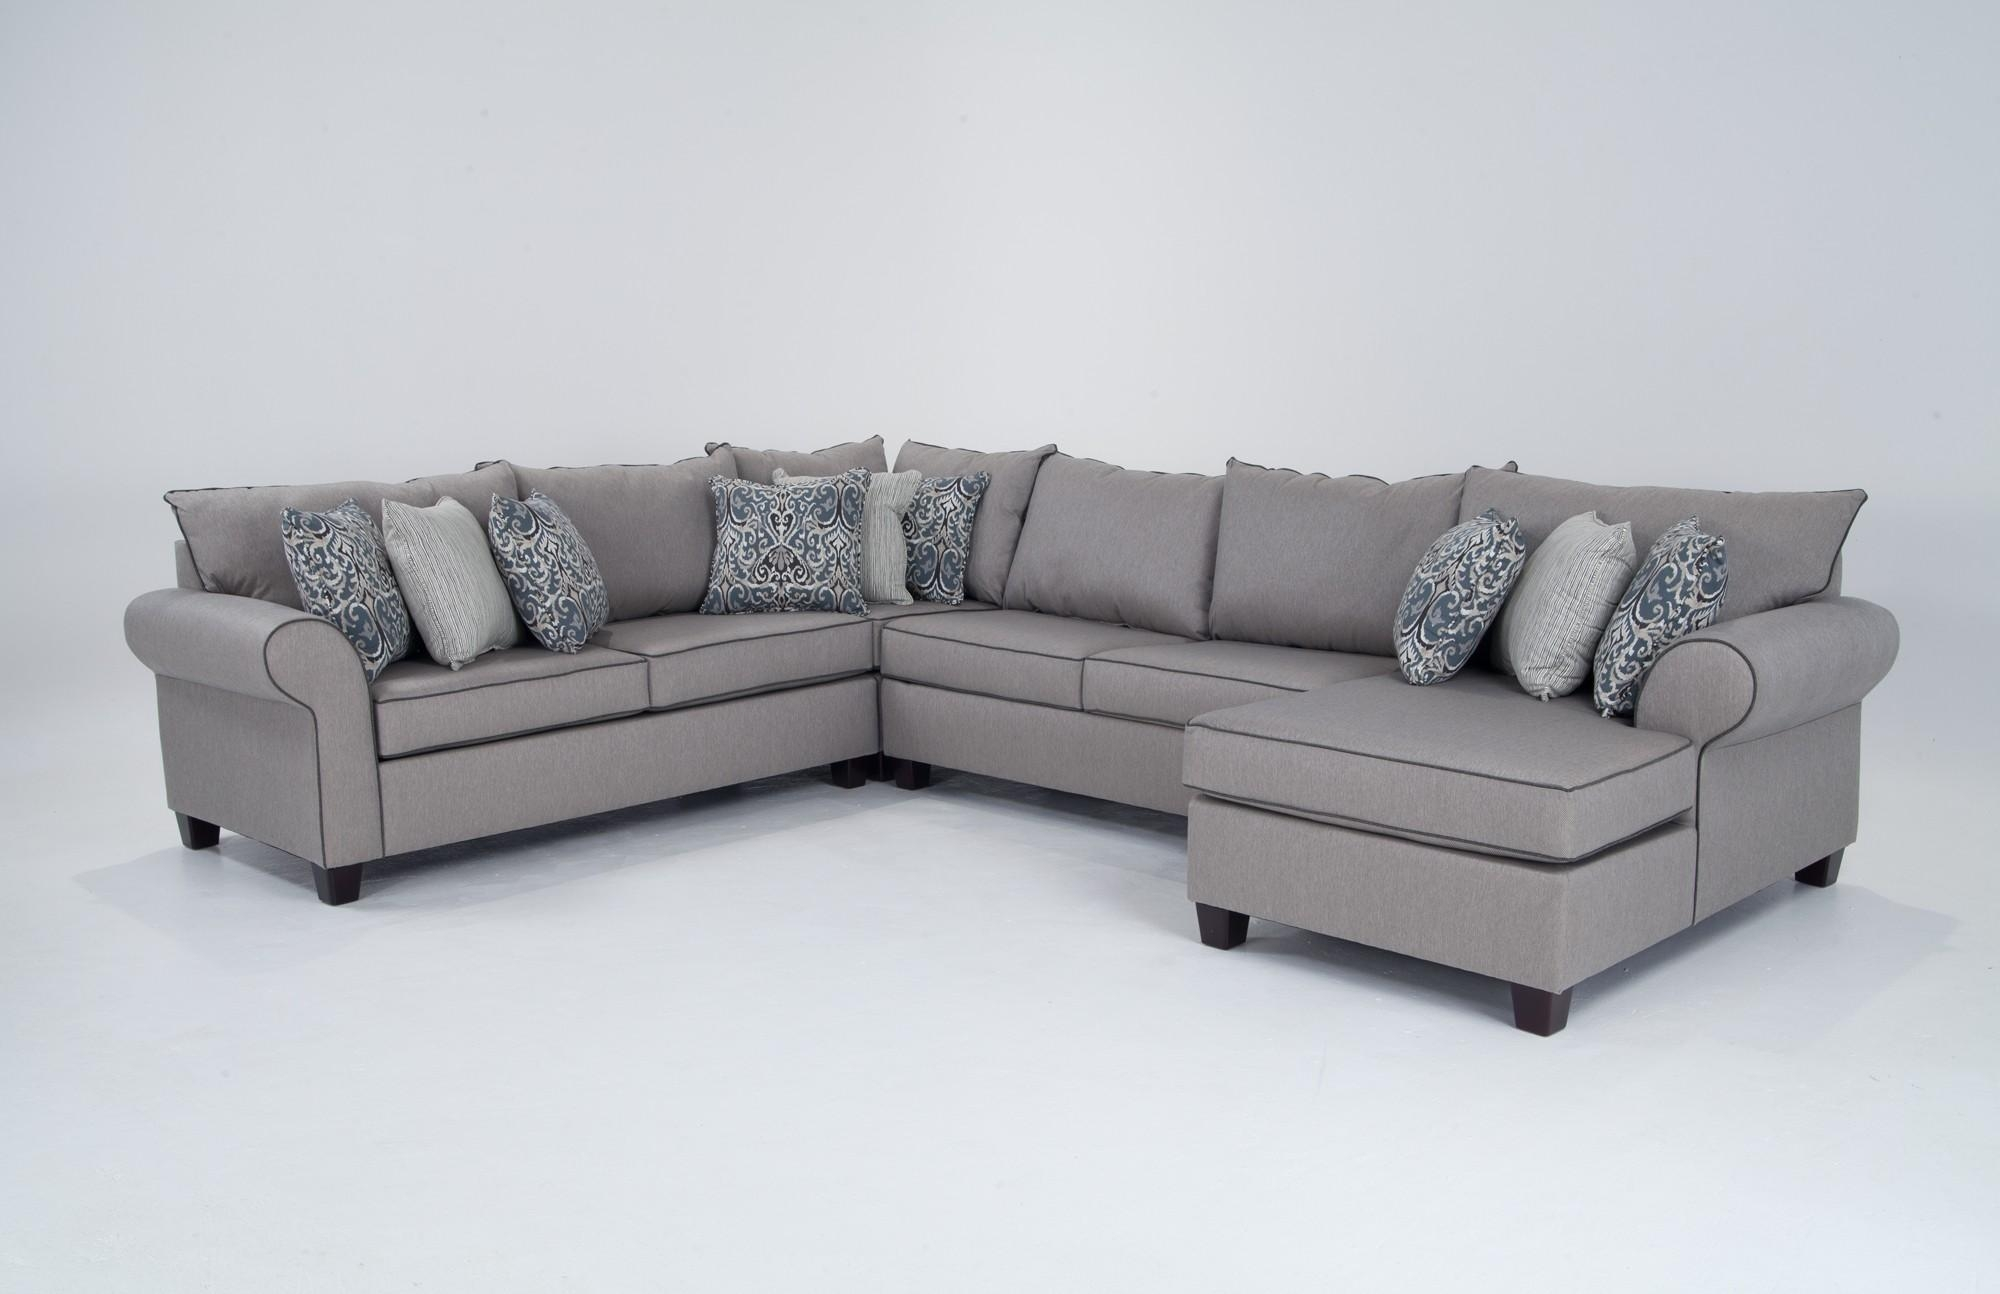 ashton sofa oz design costco chaise lounge 20 photos media room sectional ideas